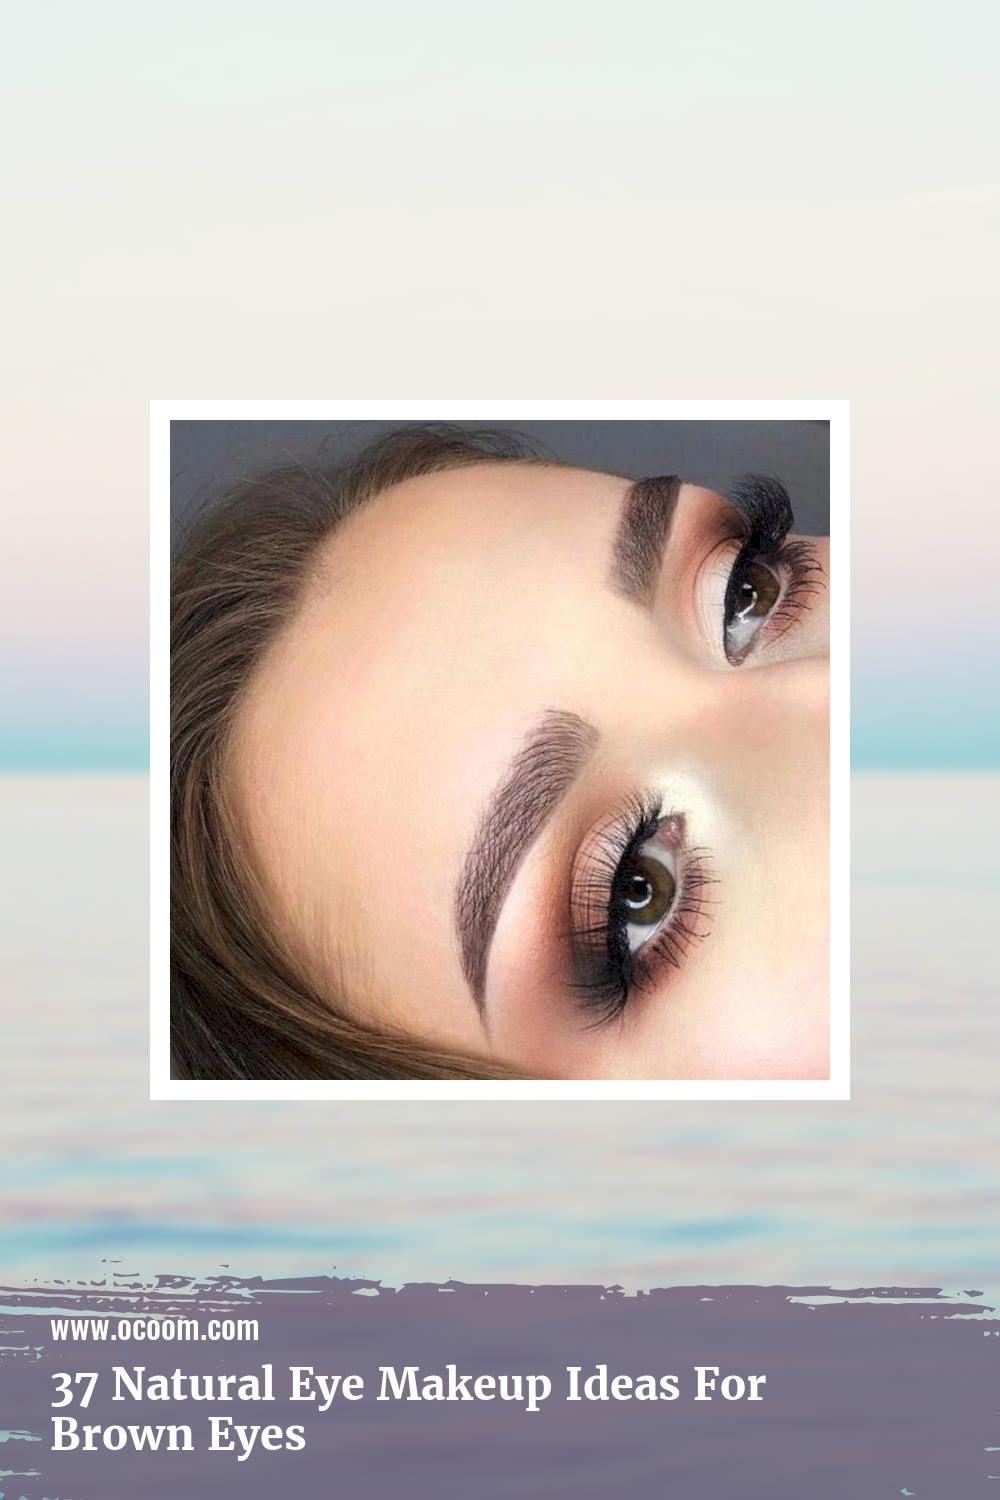 37 Natural Eye Makeup Ideas For Brown Eyes 8